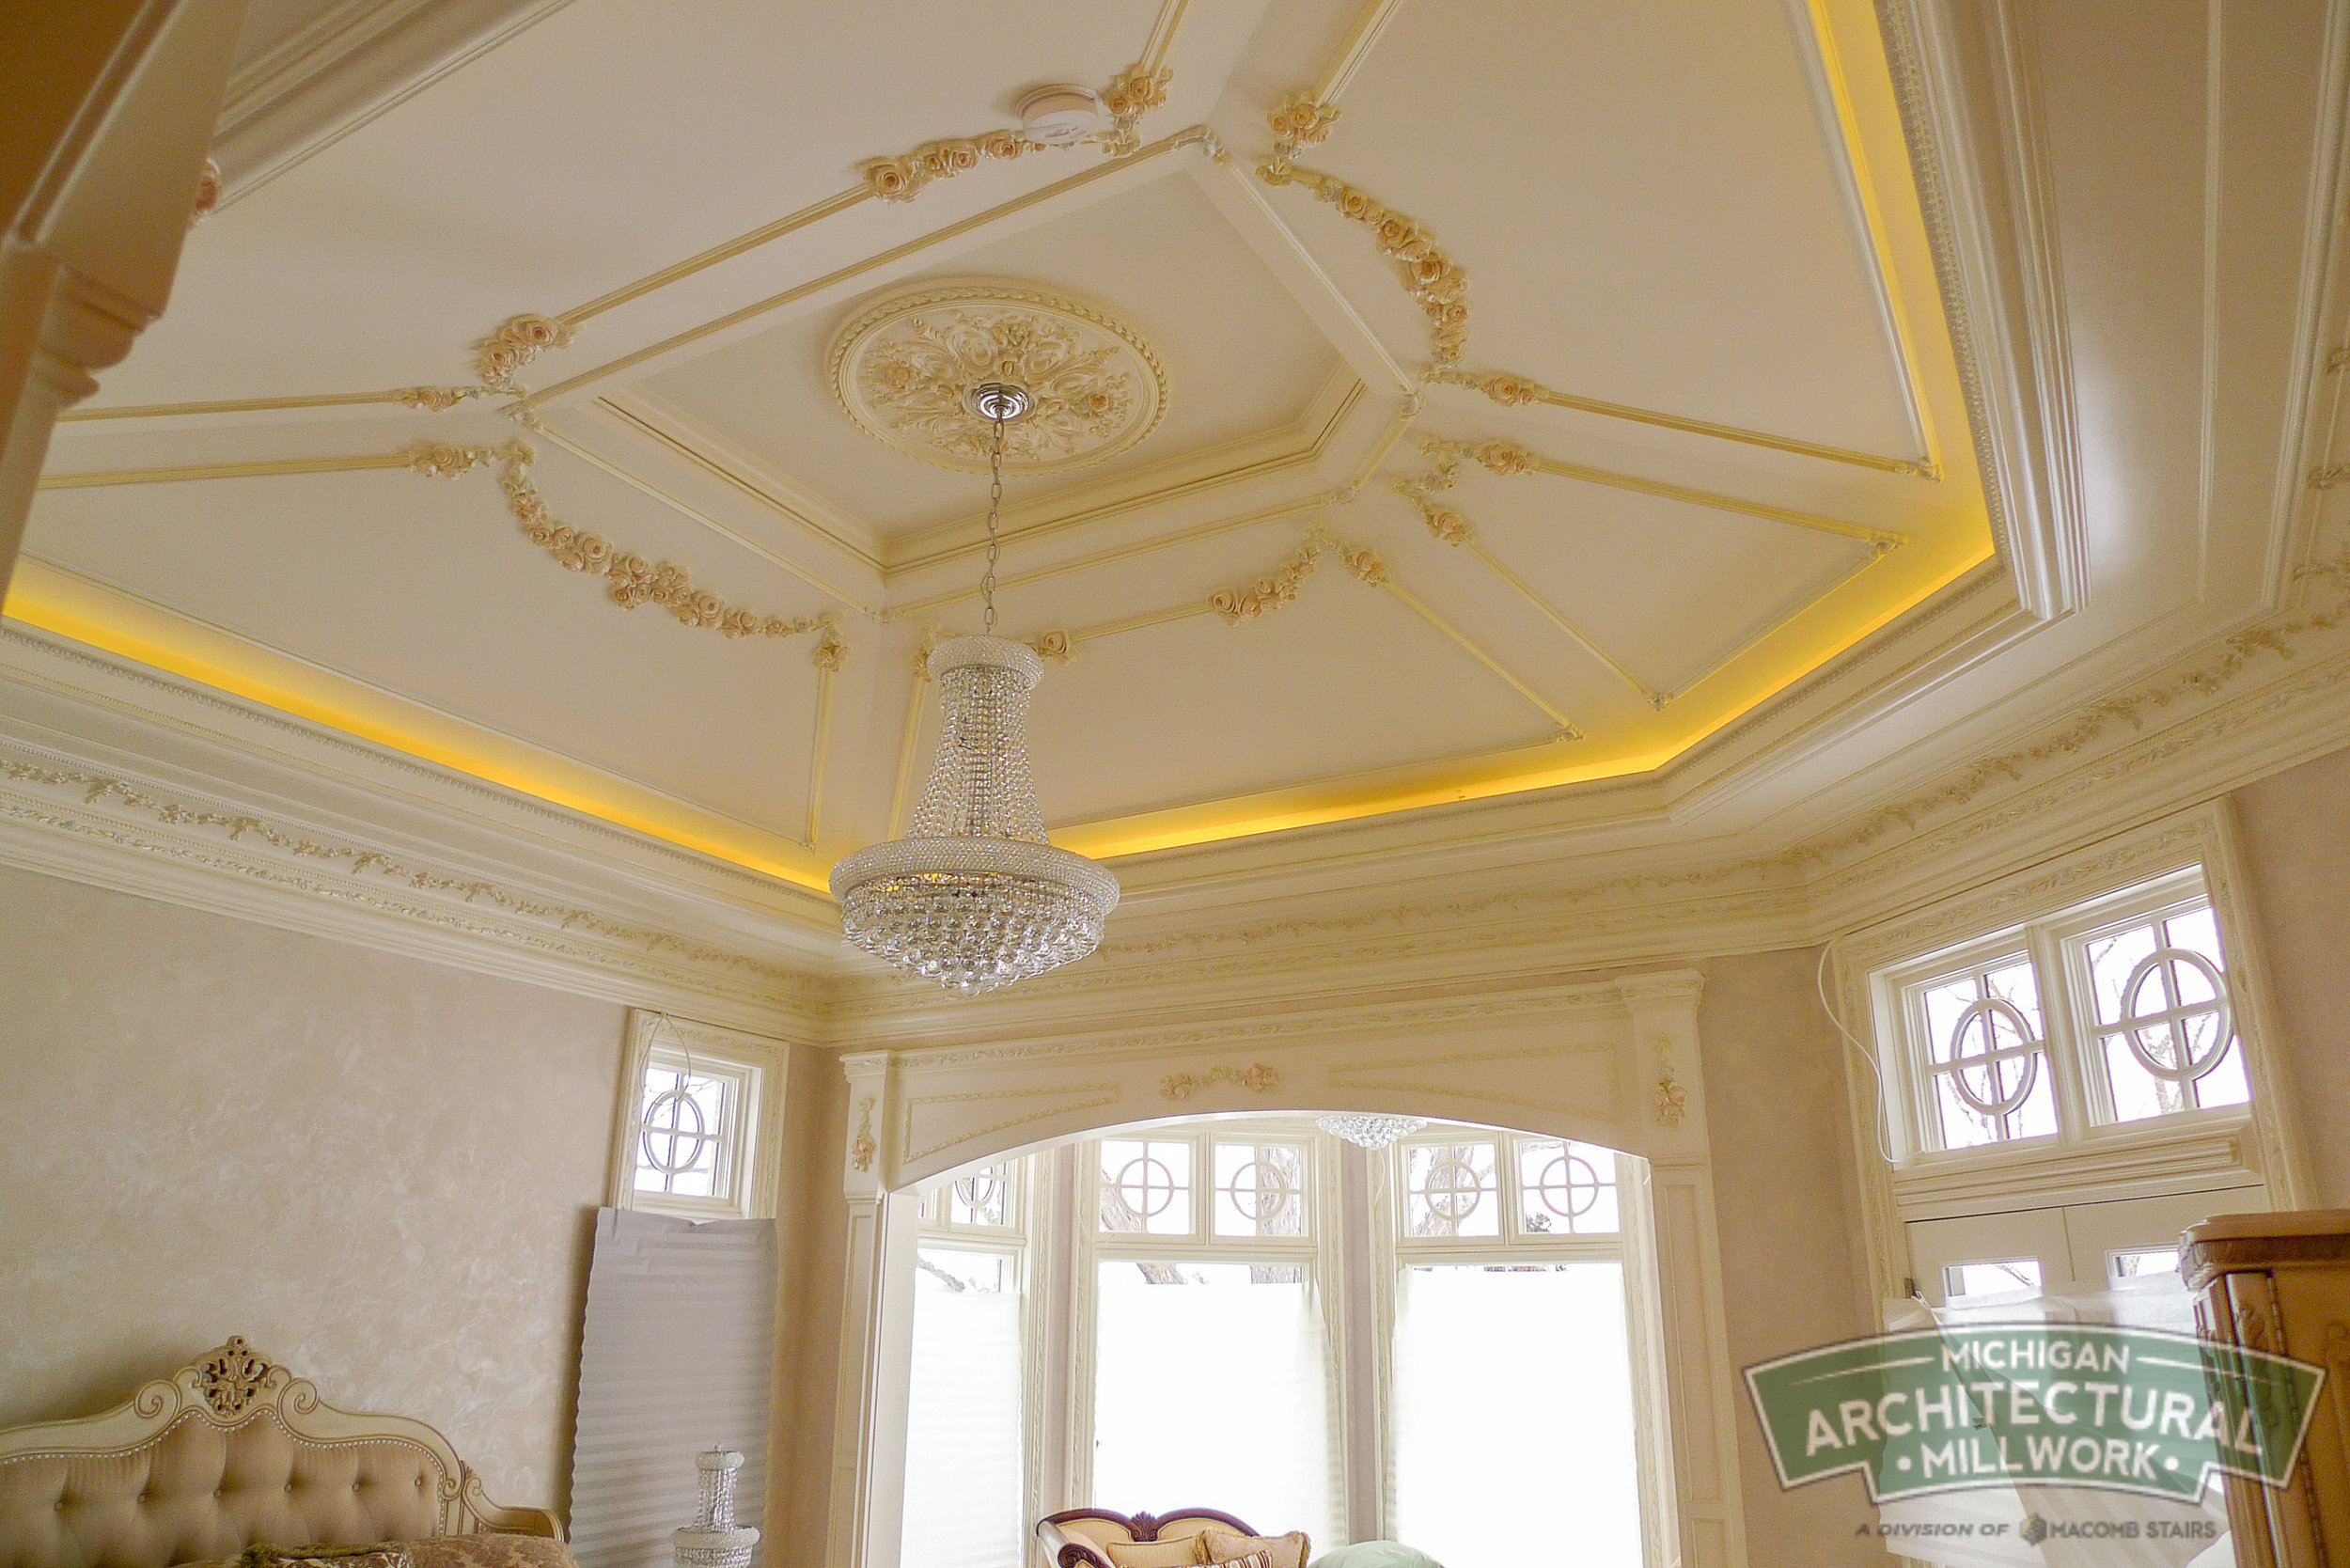 Michigan Architectural Millwork- Moulding and Millwork Photo-153.jpg